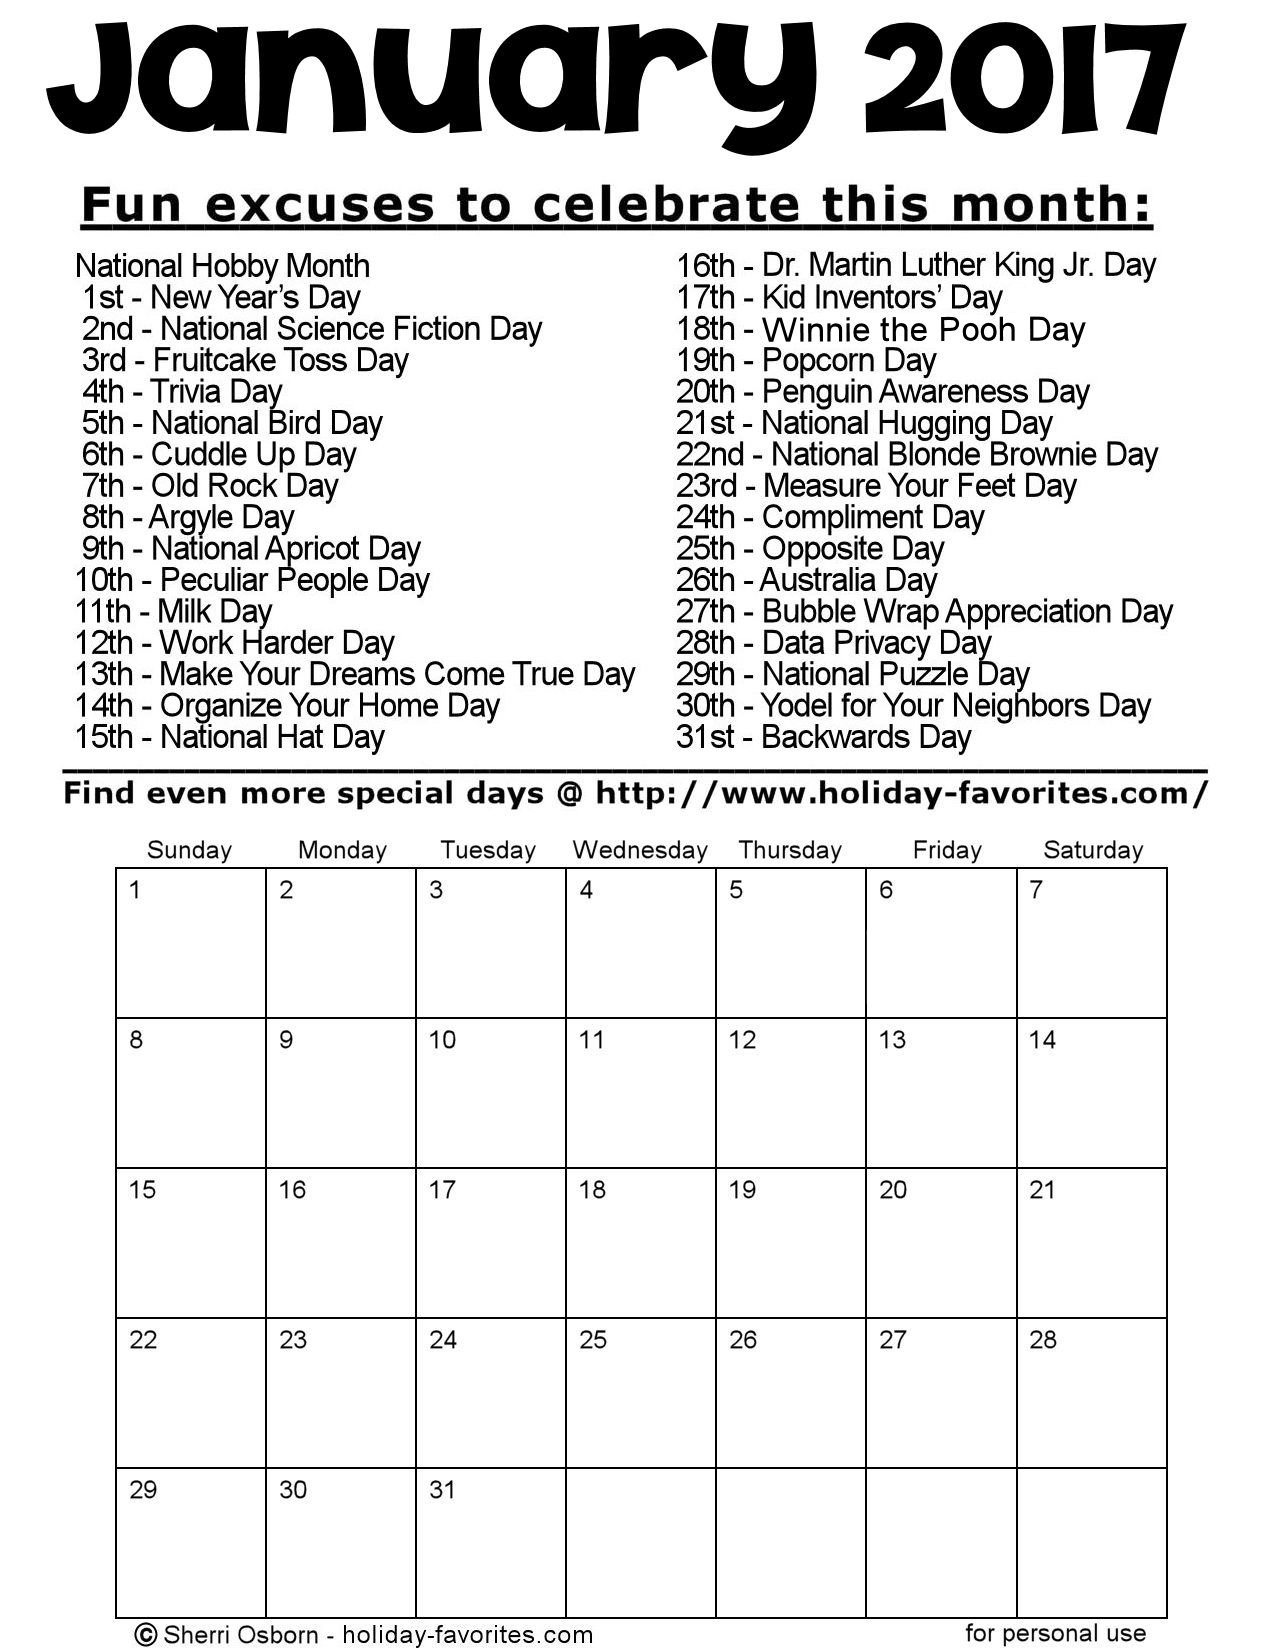 January 2017 printable calendar pages holiday favorites - Family days enero 2017 ...